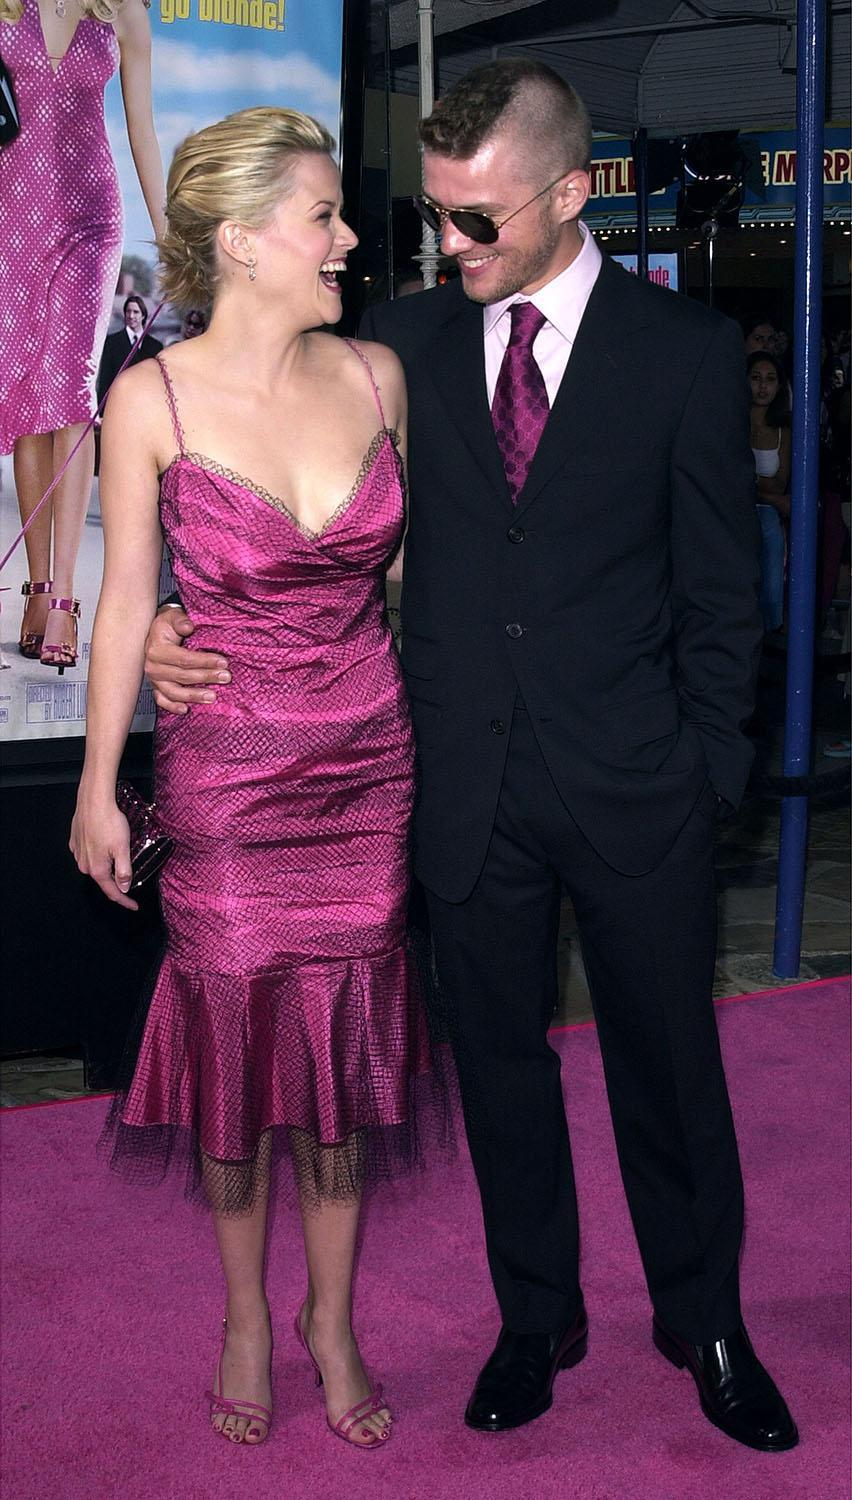 "<p>In matching hues of Elle Woods pink, Reese and Ryan walked the pink carpet at the Los Angeles premiere. The role launched Reese onto the A List, and her character has become something of a feminist icon. Reese told <a href=""https://www.instagram.com/p/BHzk_HCj7Nx/?hl=en"" rel=""nofollow noopener"" target=""_blank"" data-ylk=""slk:Instagram"" class=""link rapid-noclick-resp"">Instagram</a> for the 15th anniversary, ""It actually had a meaningful story. And it was about female empowerment. It wasn't necessarily about the girl getting the guy.""<br> (Photo: Getty Images) </p>"